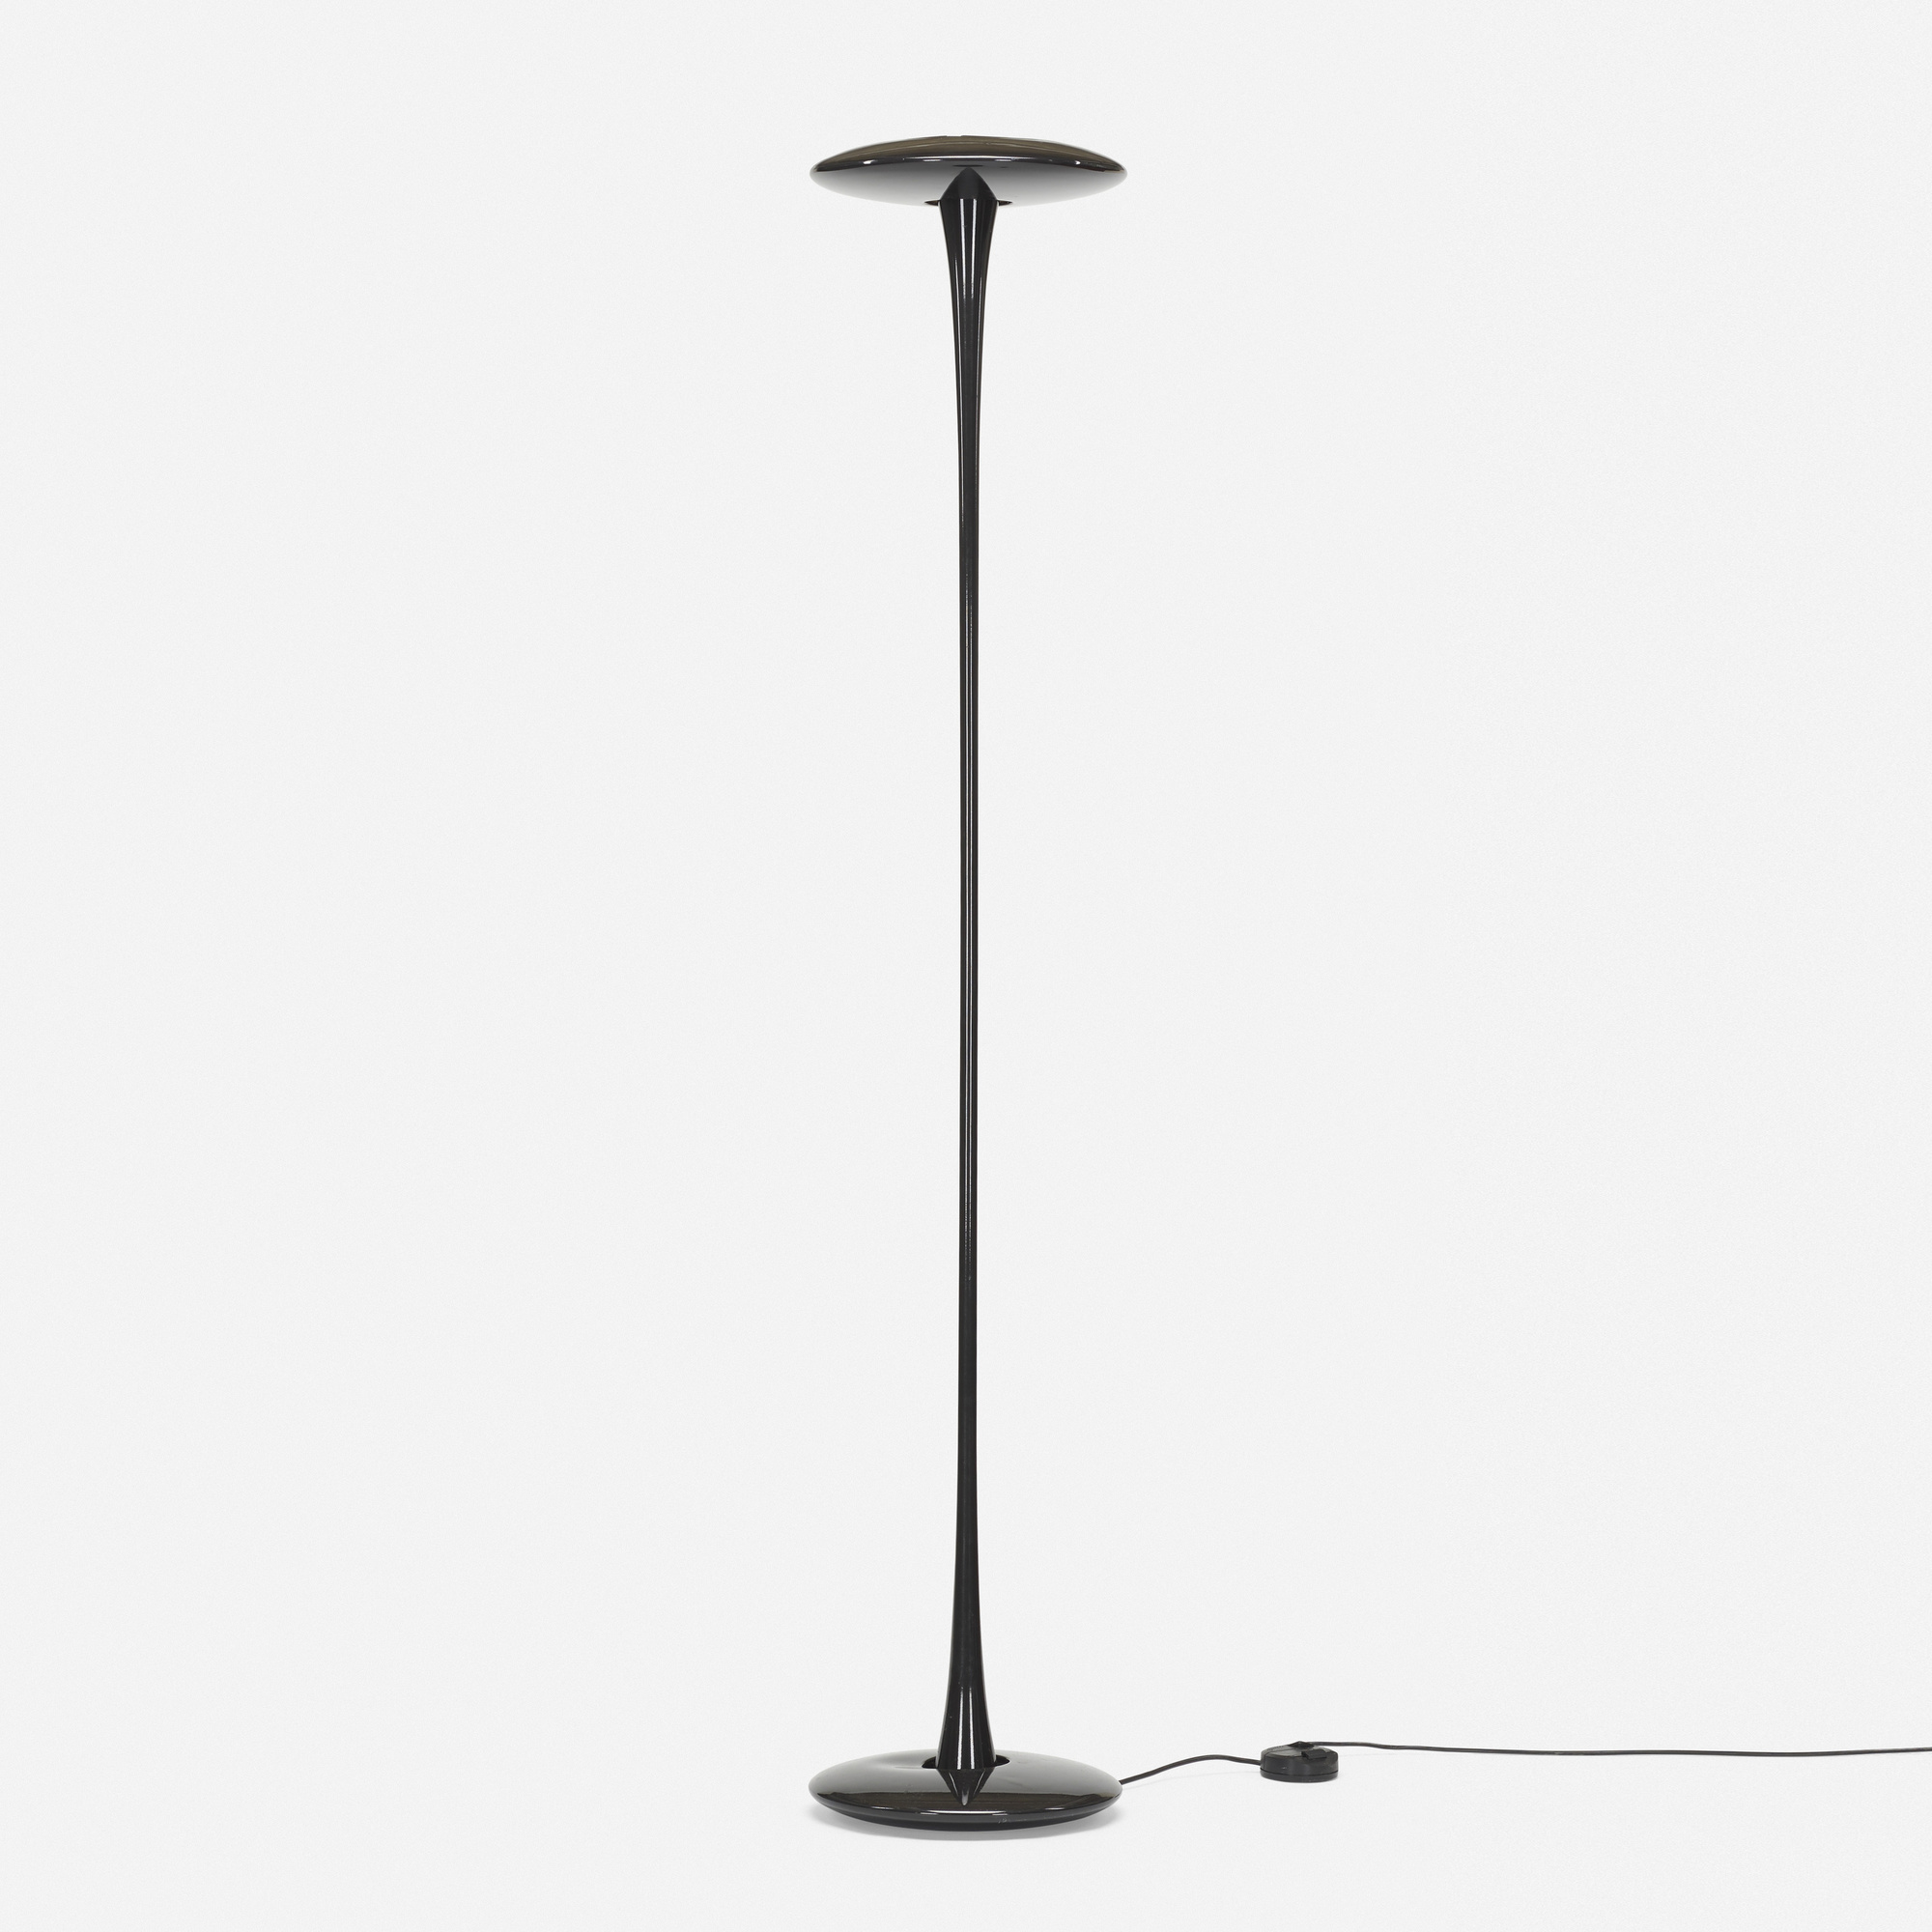 a3985278f49 225  Marc Newson   Helice floor lamp (1 of 2)